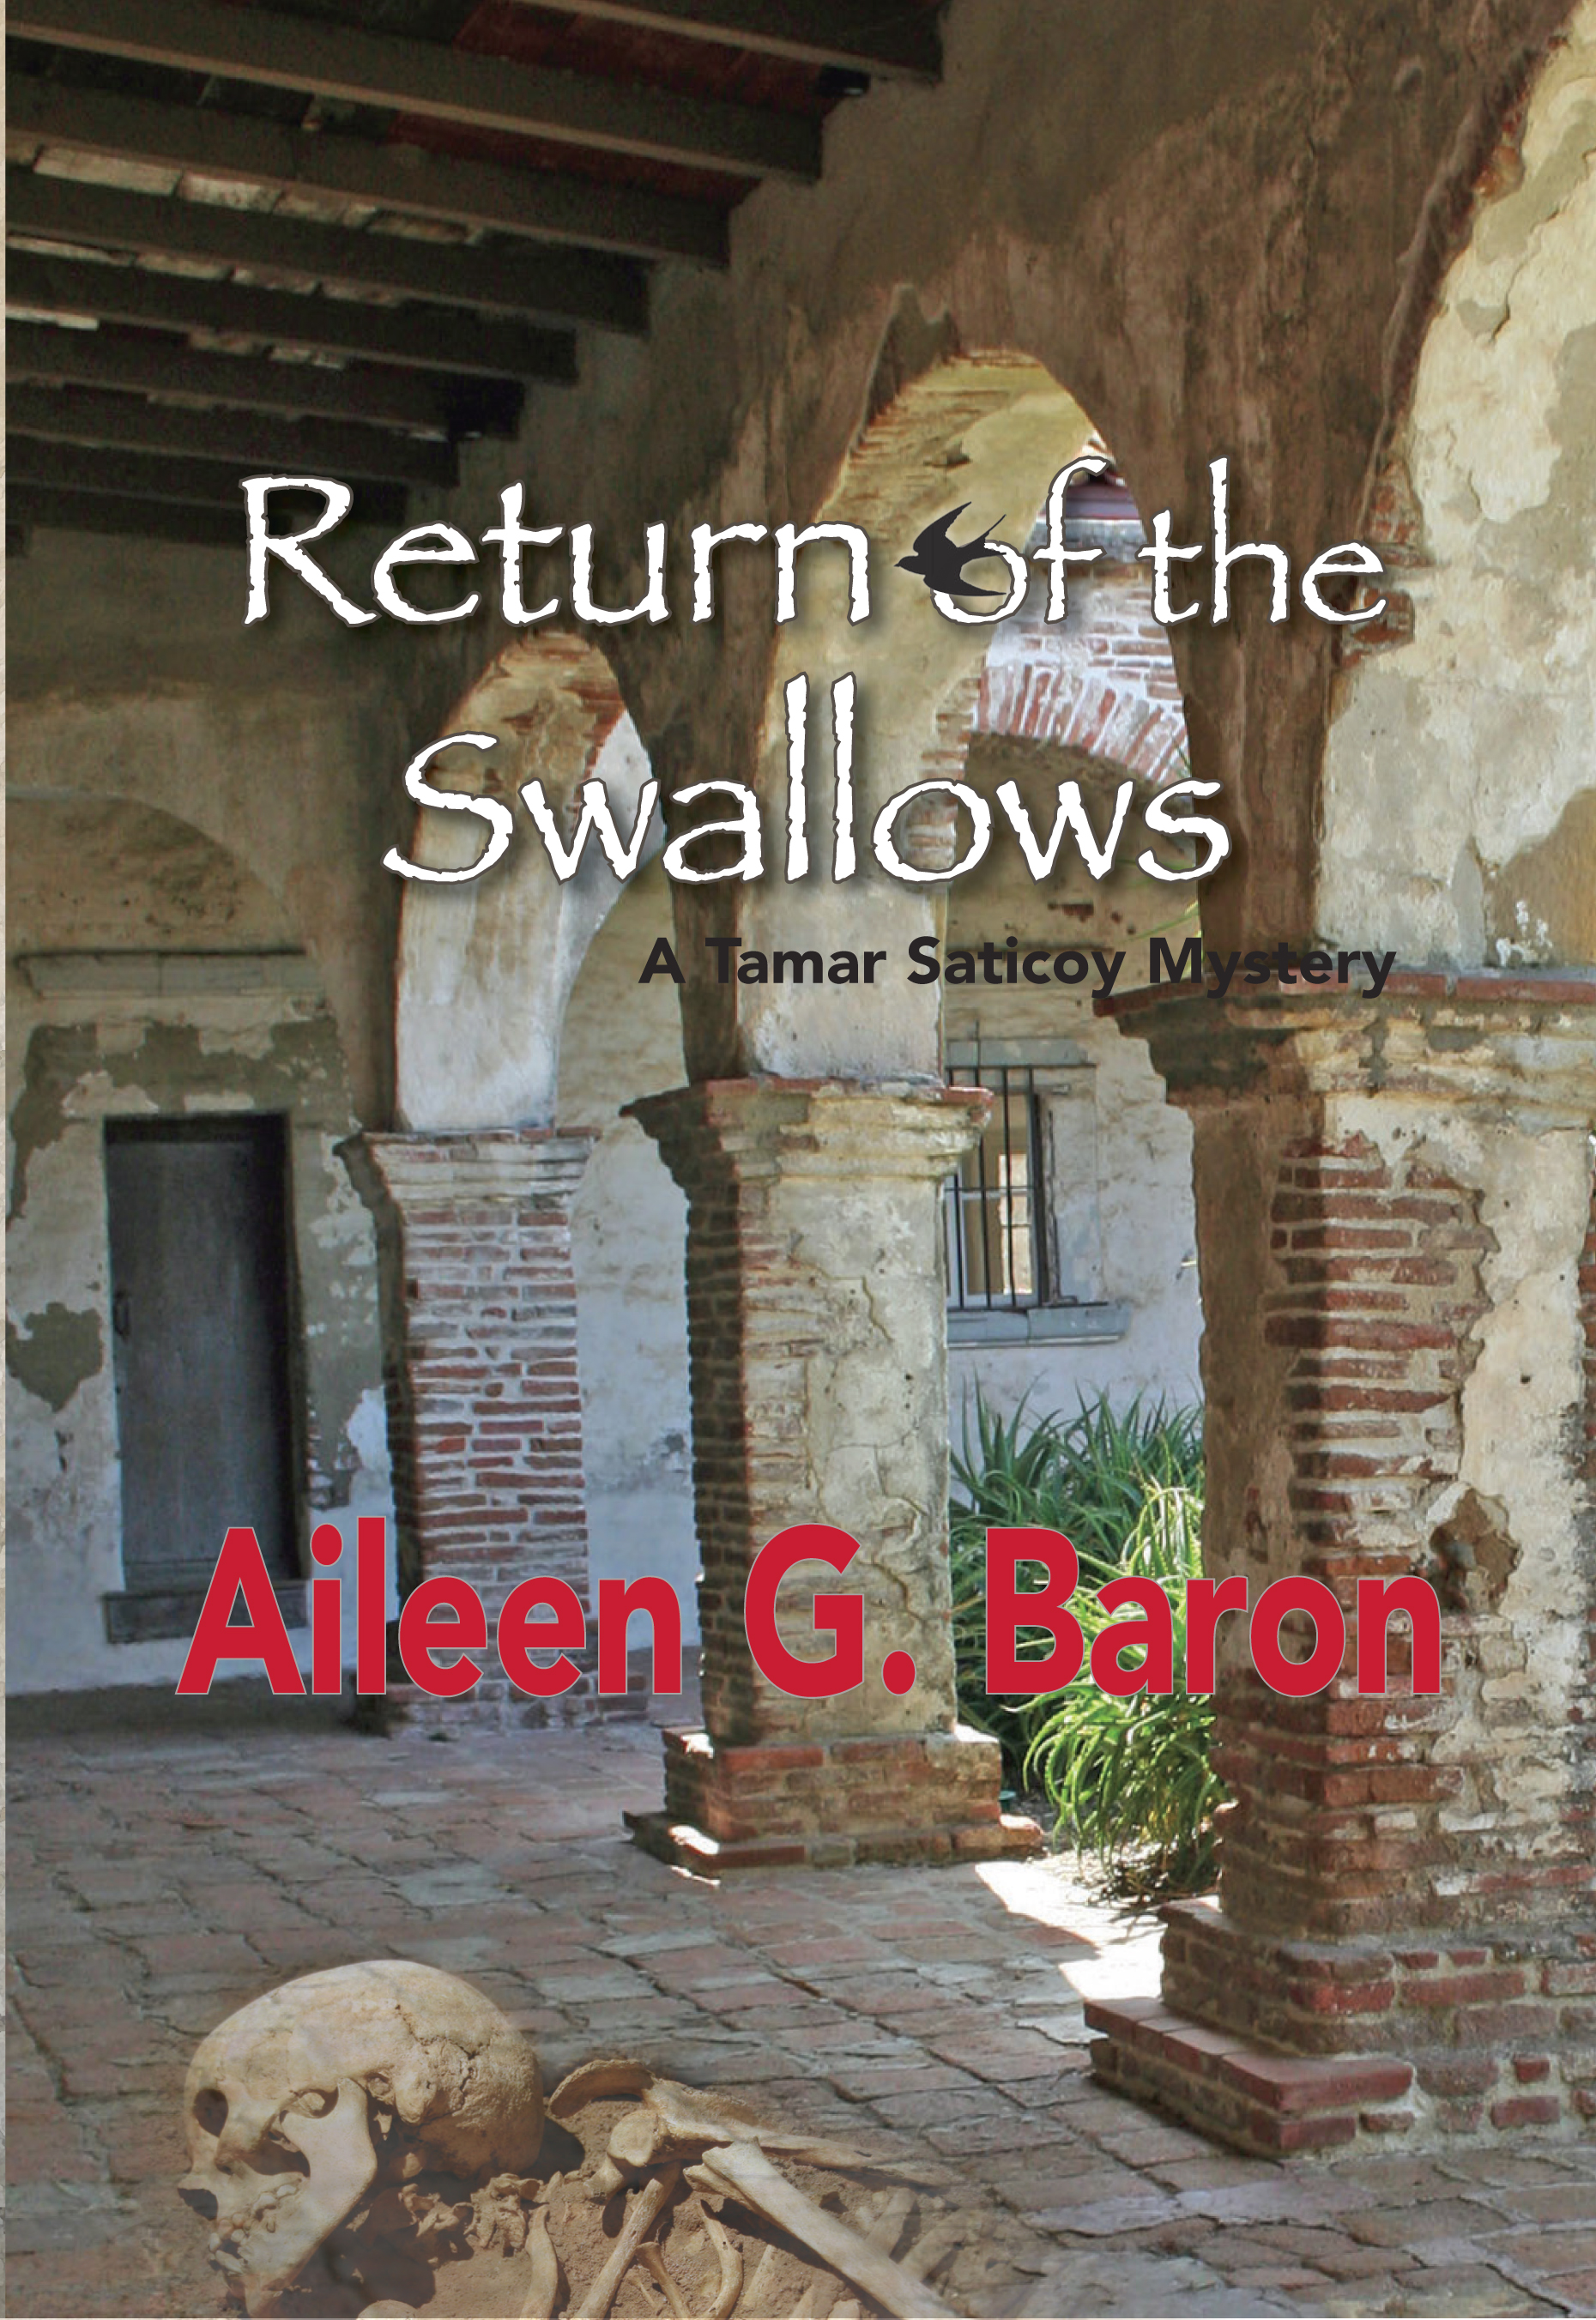 Cover of Return of the Swallows by Aileen G. Baron